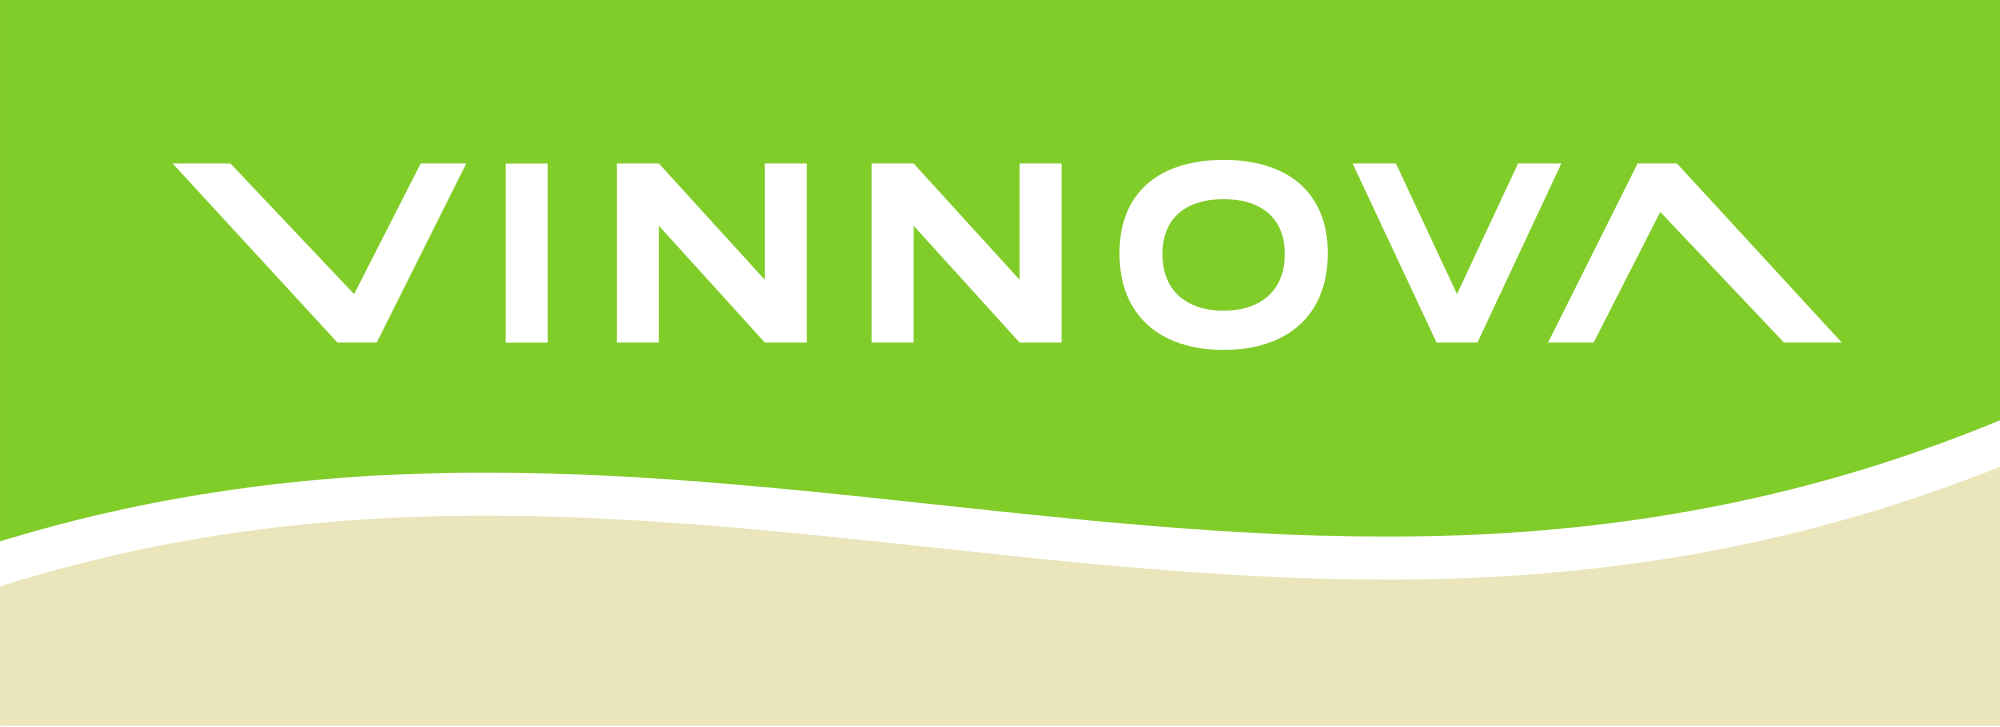 VINNOVA Utmaningsdriven Innovation